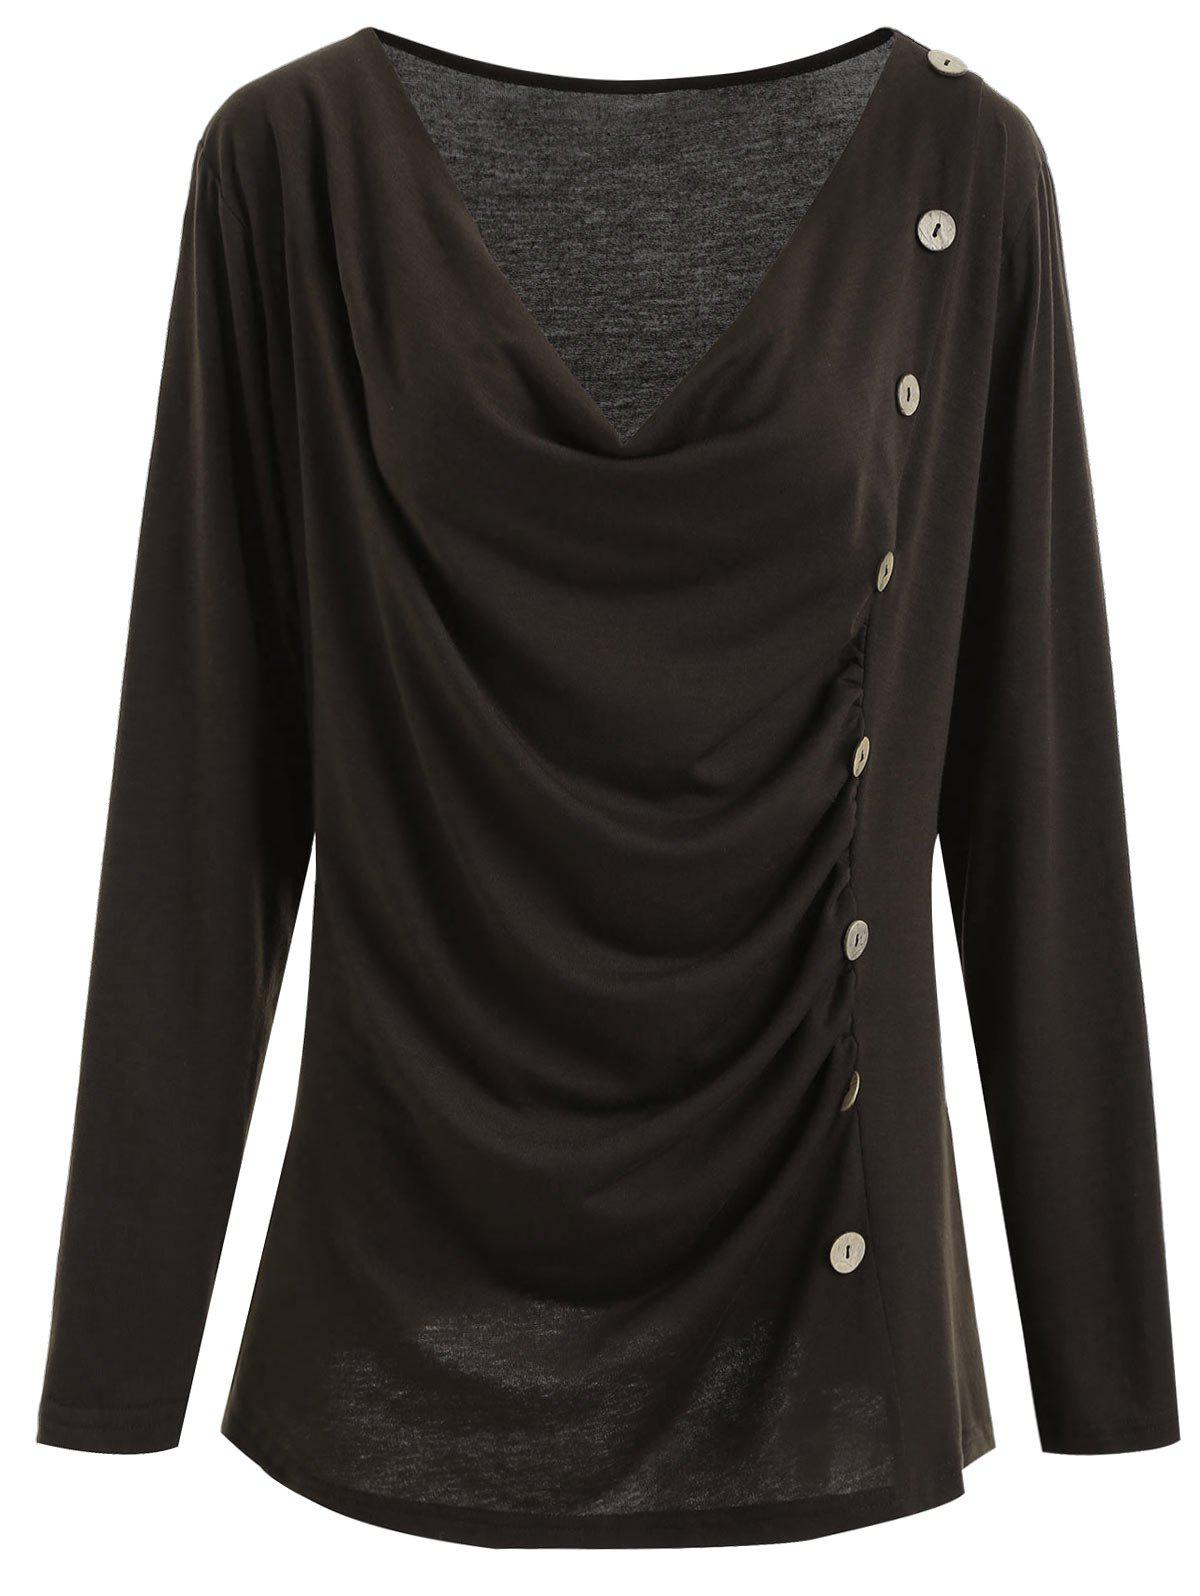 Cowl Neck Button Embellished Plus Size T-shirt plus size cowl neck zip pocket t shirt